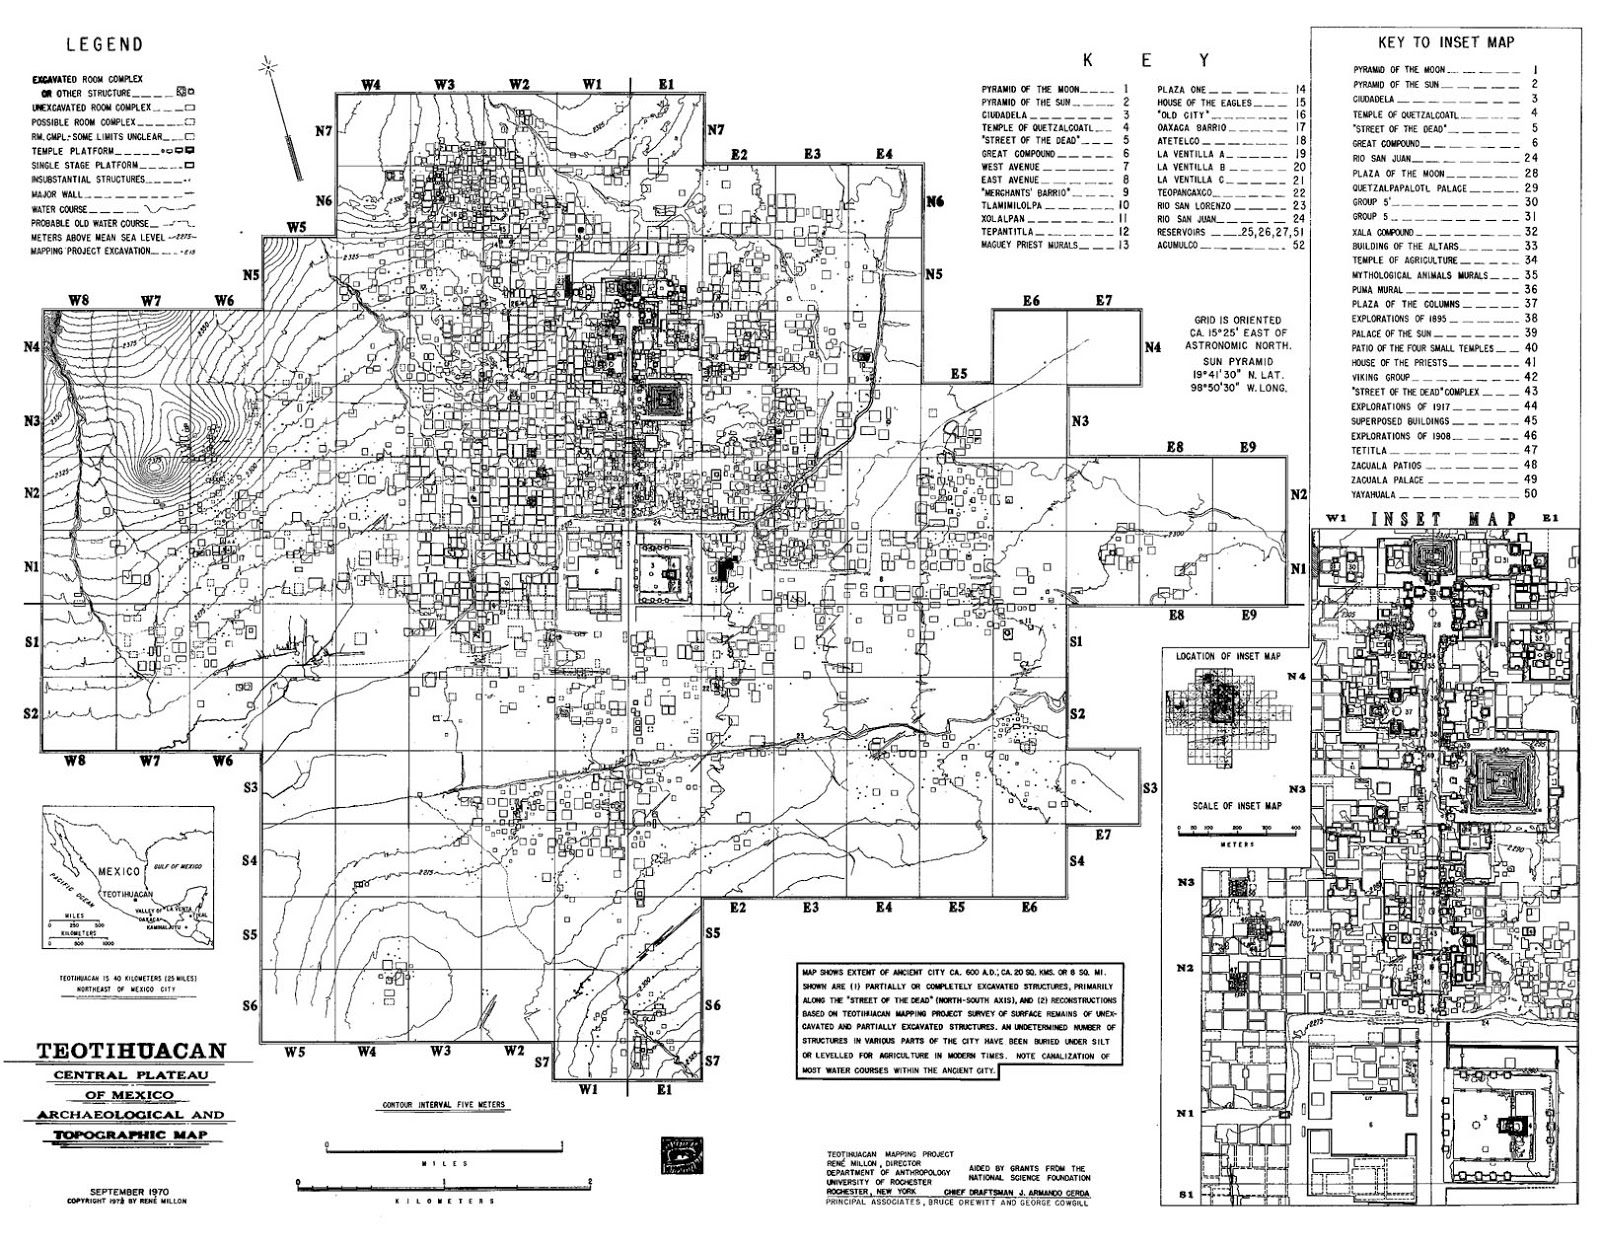 the millon cowgill map of teotihuacan